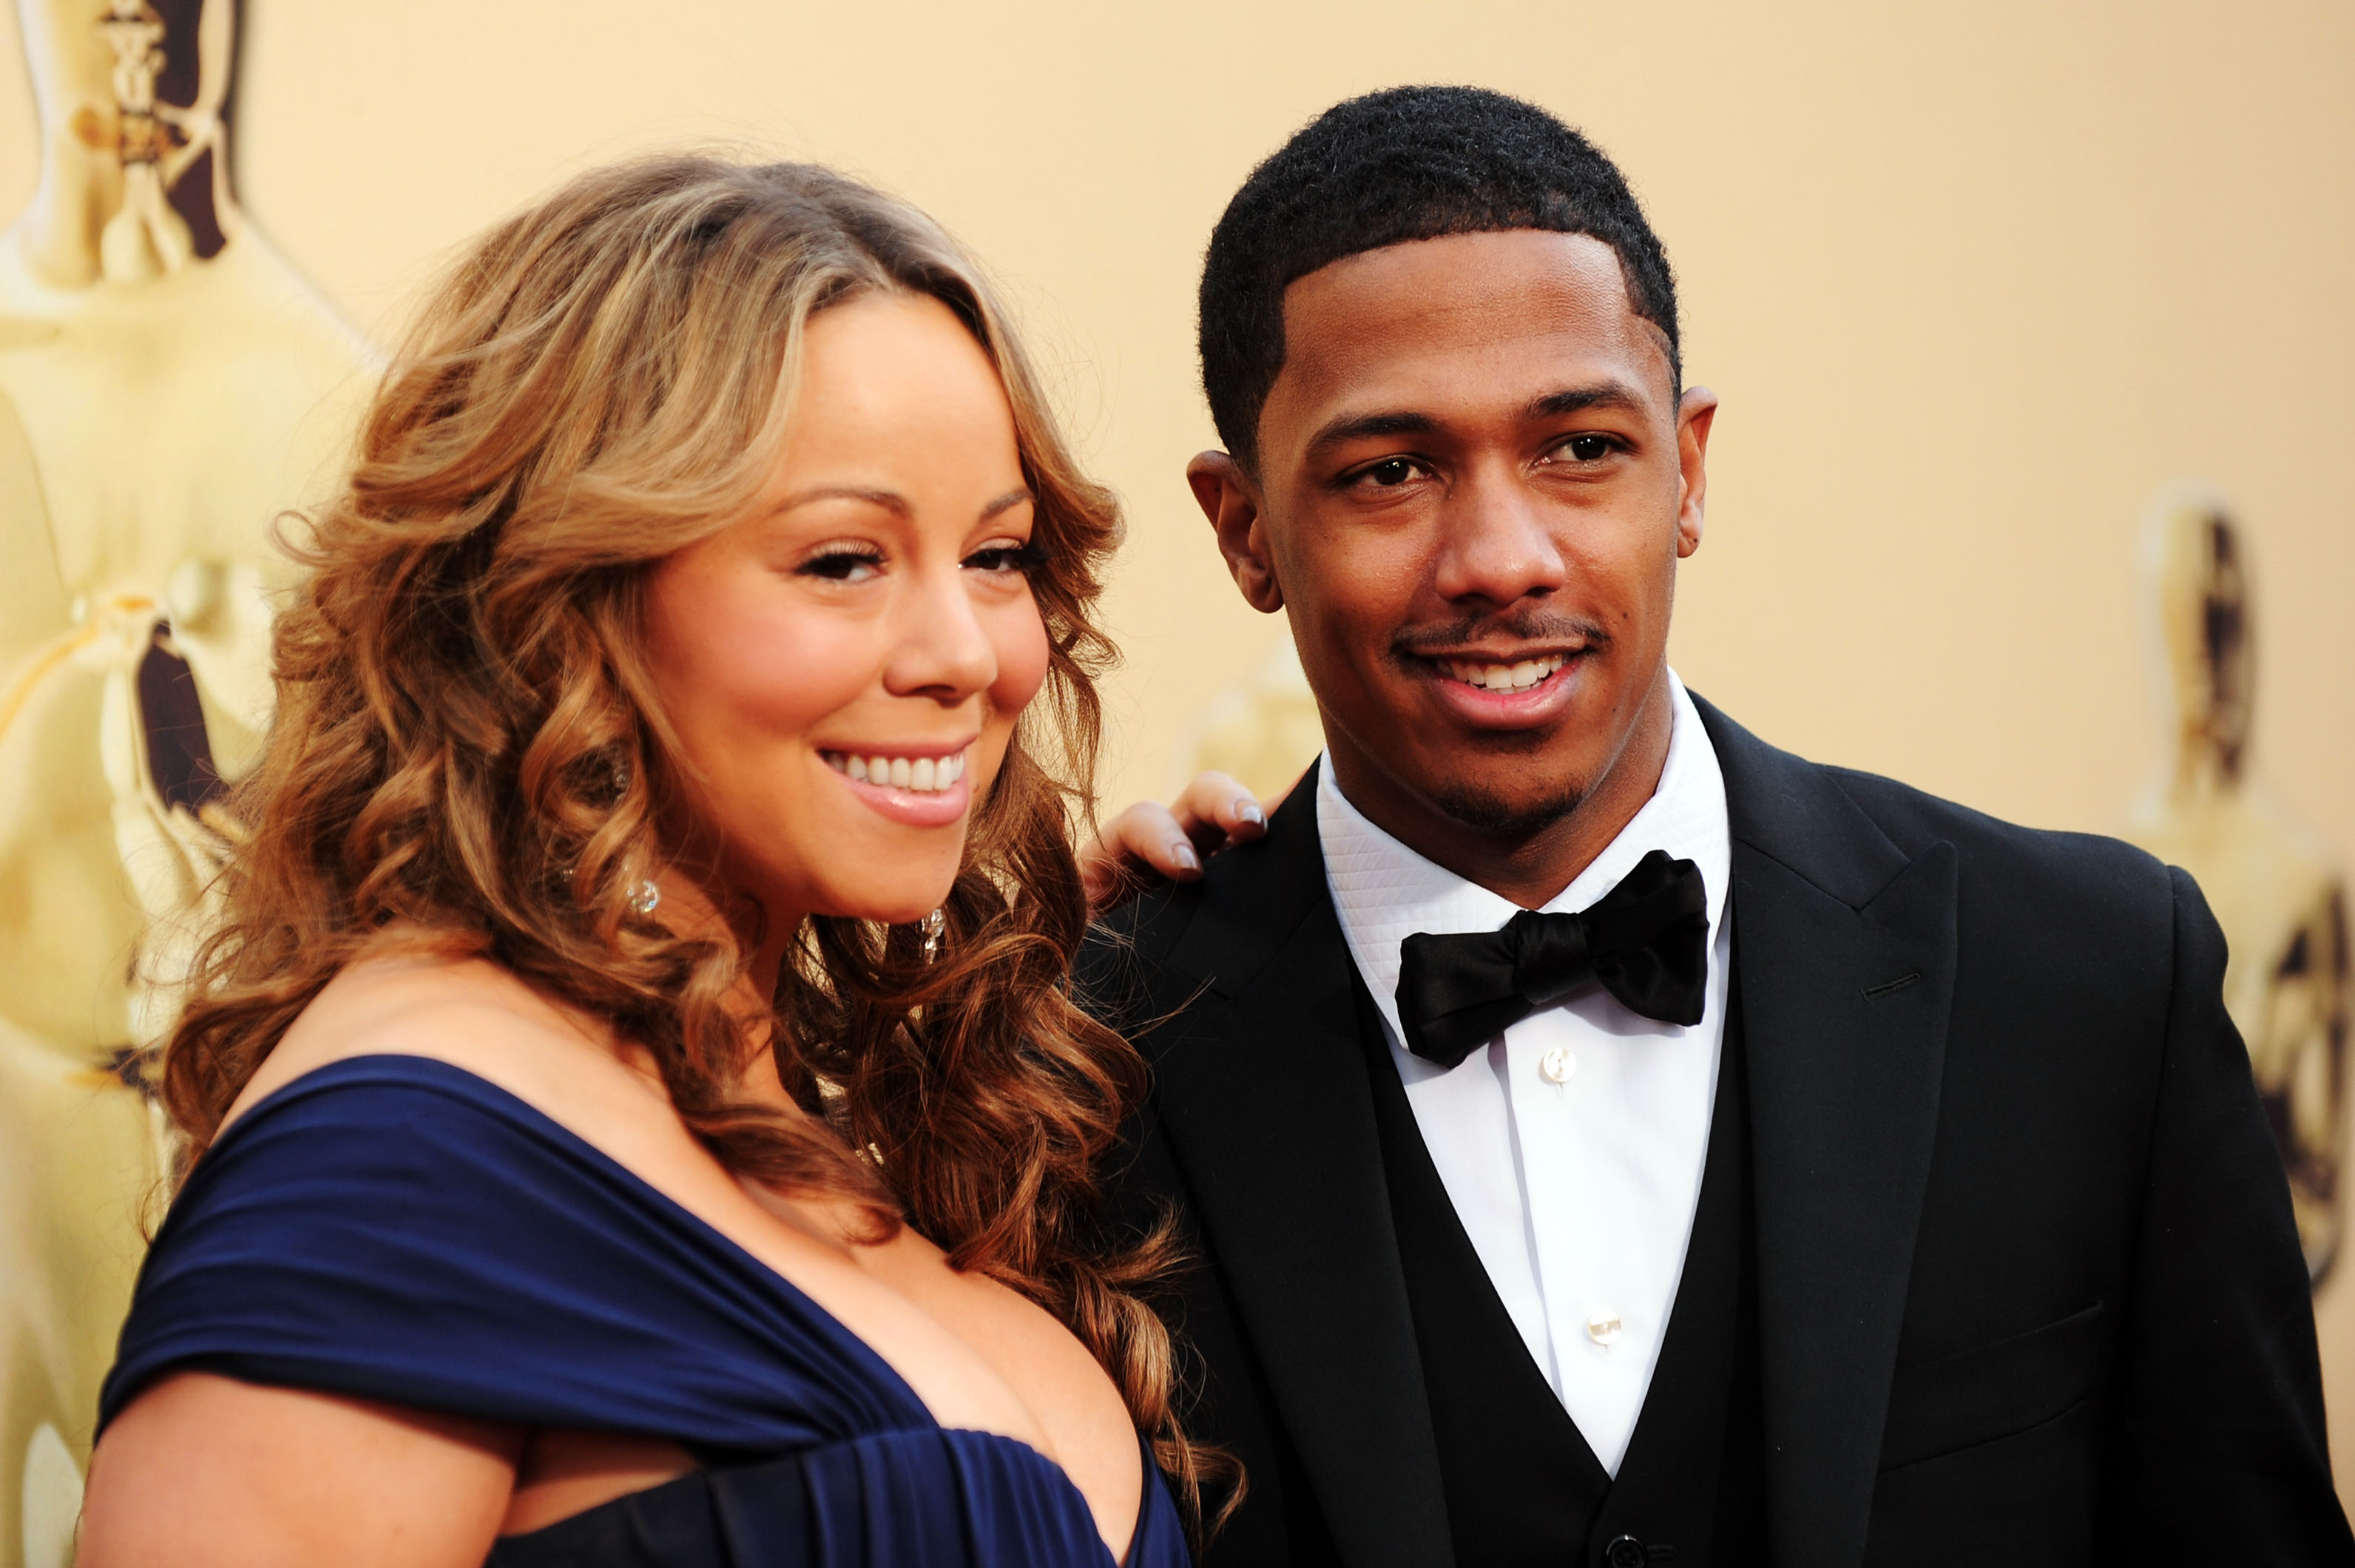 HOLLYWOOD - MARCH 07: Actress Mariah Carey and husband Nick Cannon arrive at the 82nd Annual Academy Awards held at Kodak Theatre on March 7, 2010 in Hollywood, California. (Photo by Alberto E. Rodriguez/Getty Images)